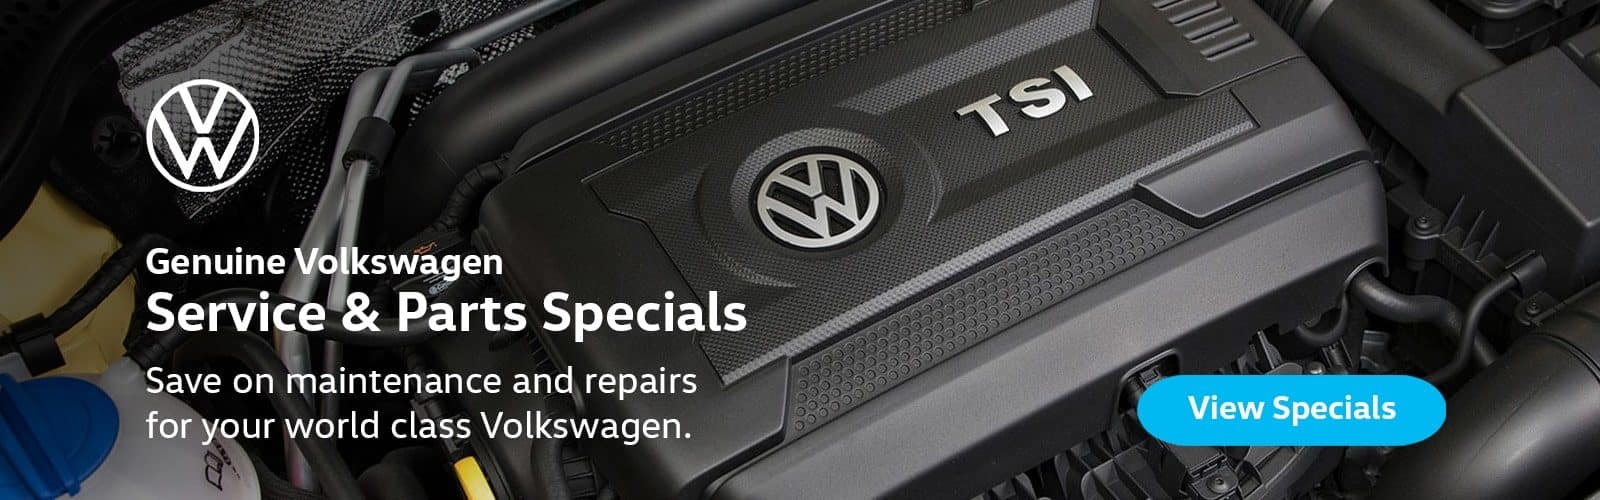 vw-service-homepage-banner-1600×500-min